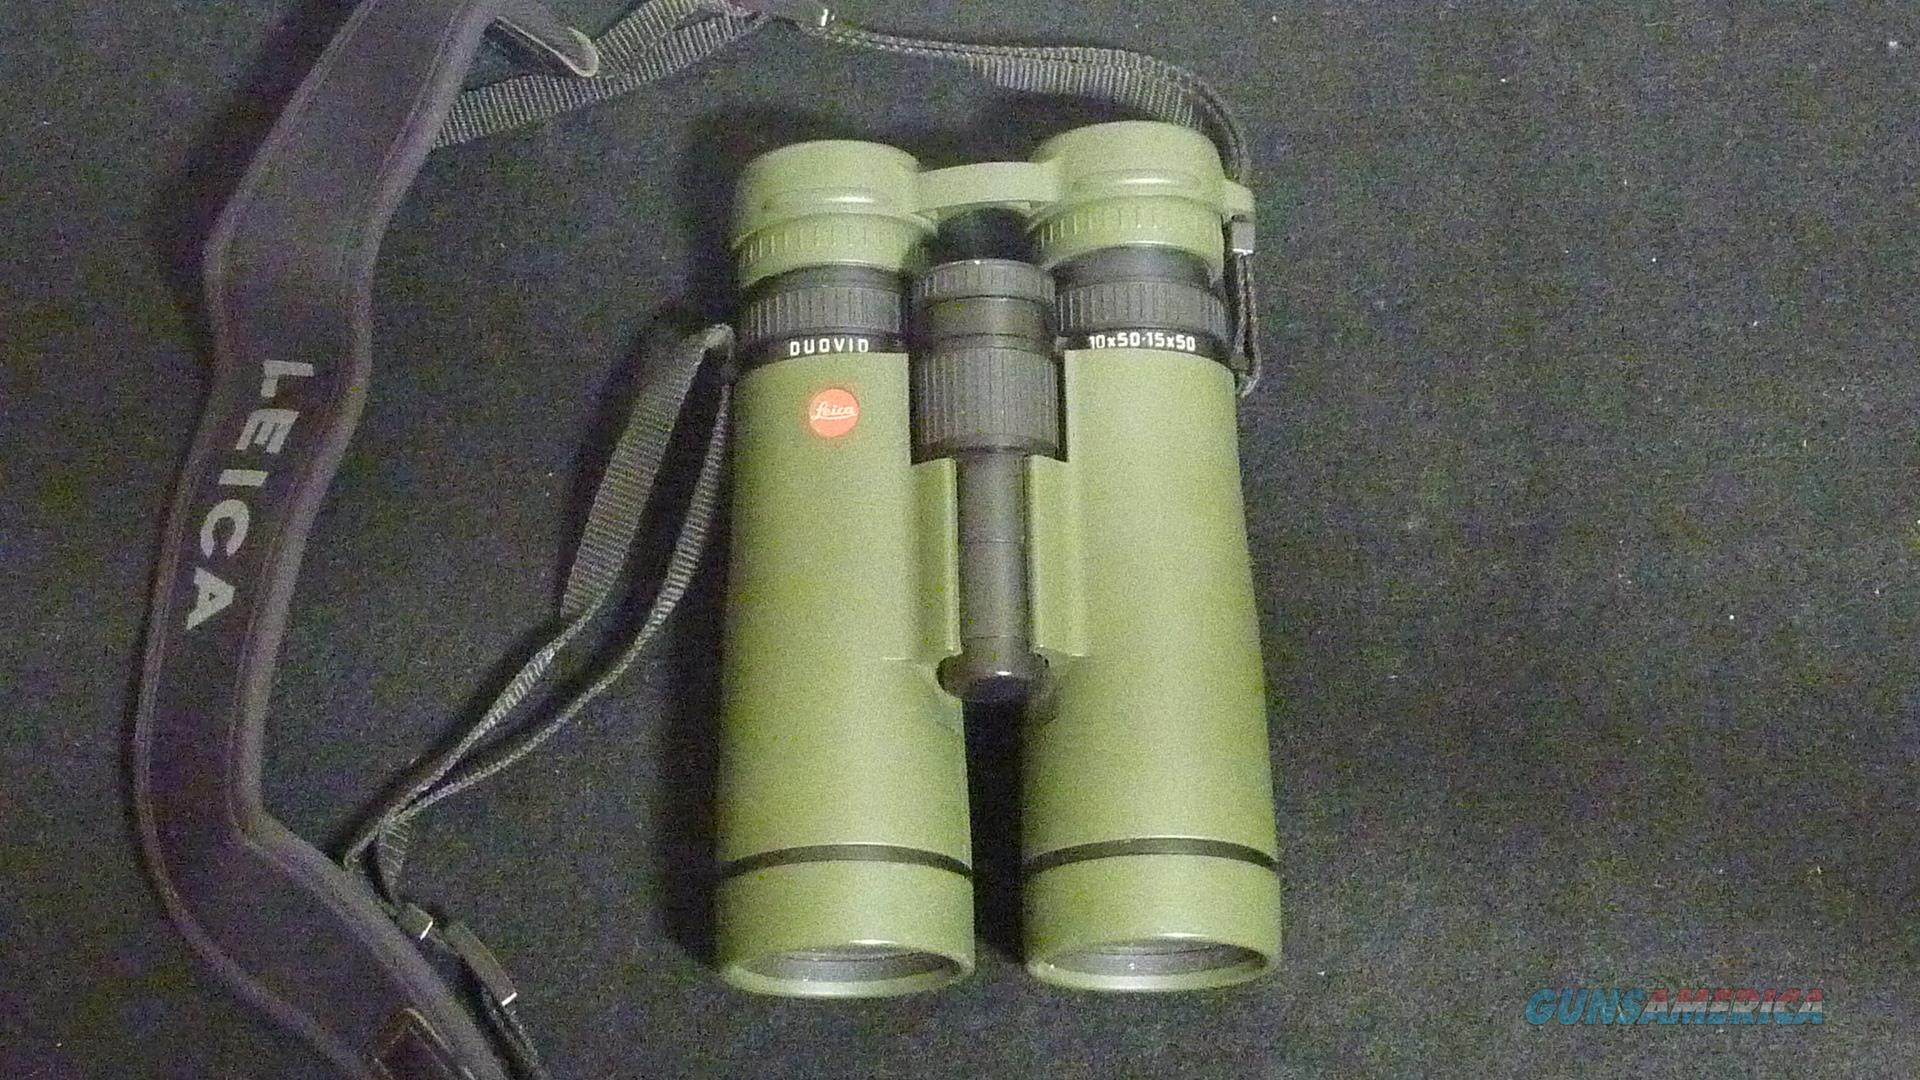 Leica Duovid 10-15x50 binoculars  Non-Guns > Scopes/Mounts/Rings & Optics > Non-Scope Optics > Binoculars